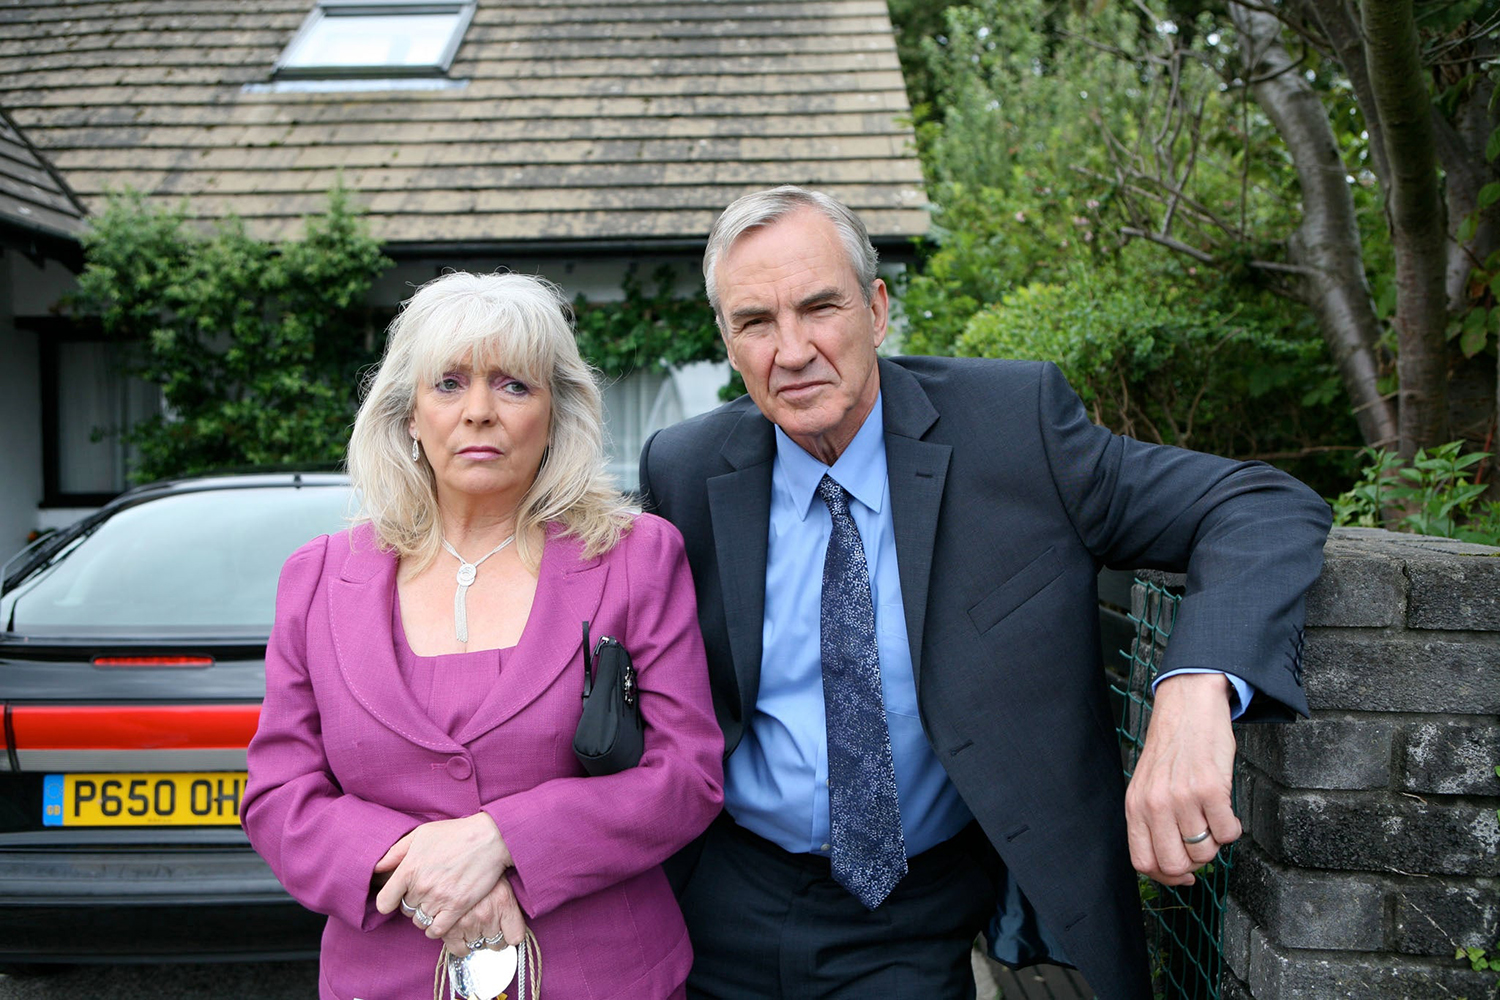 Pam and Mick Shipman in front of the Billericay bungalow. Image: BBC